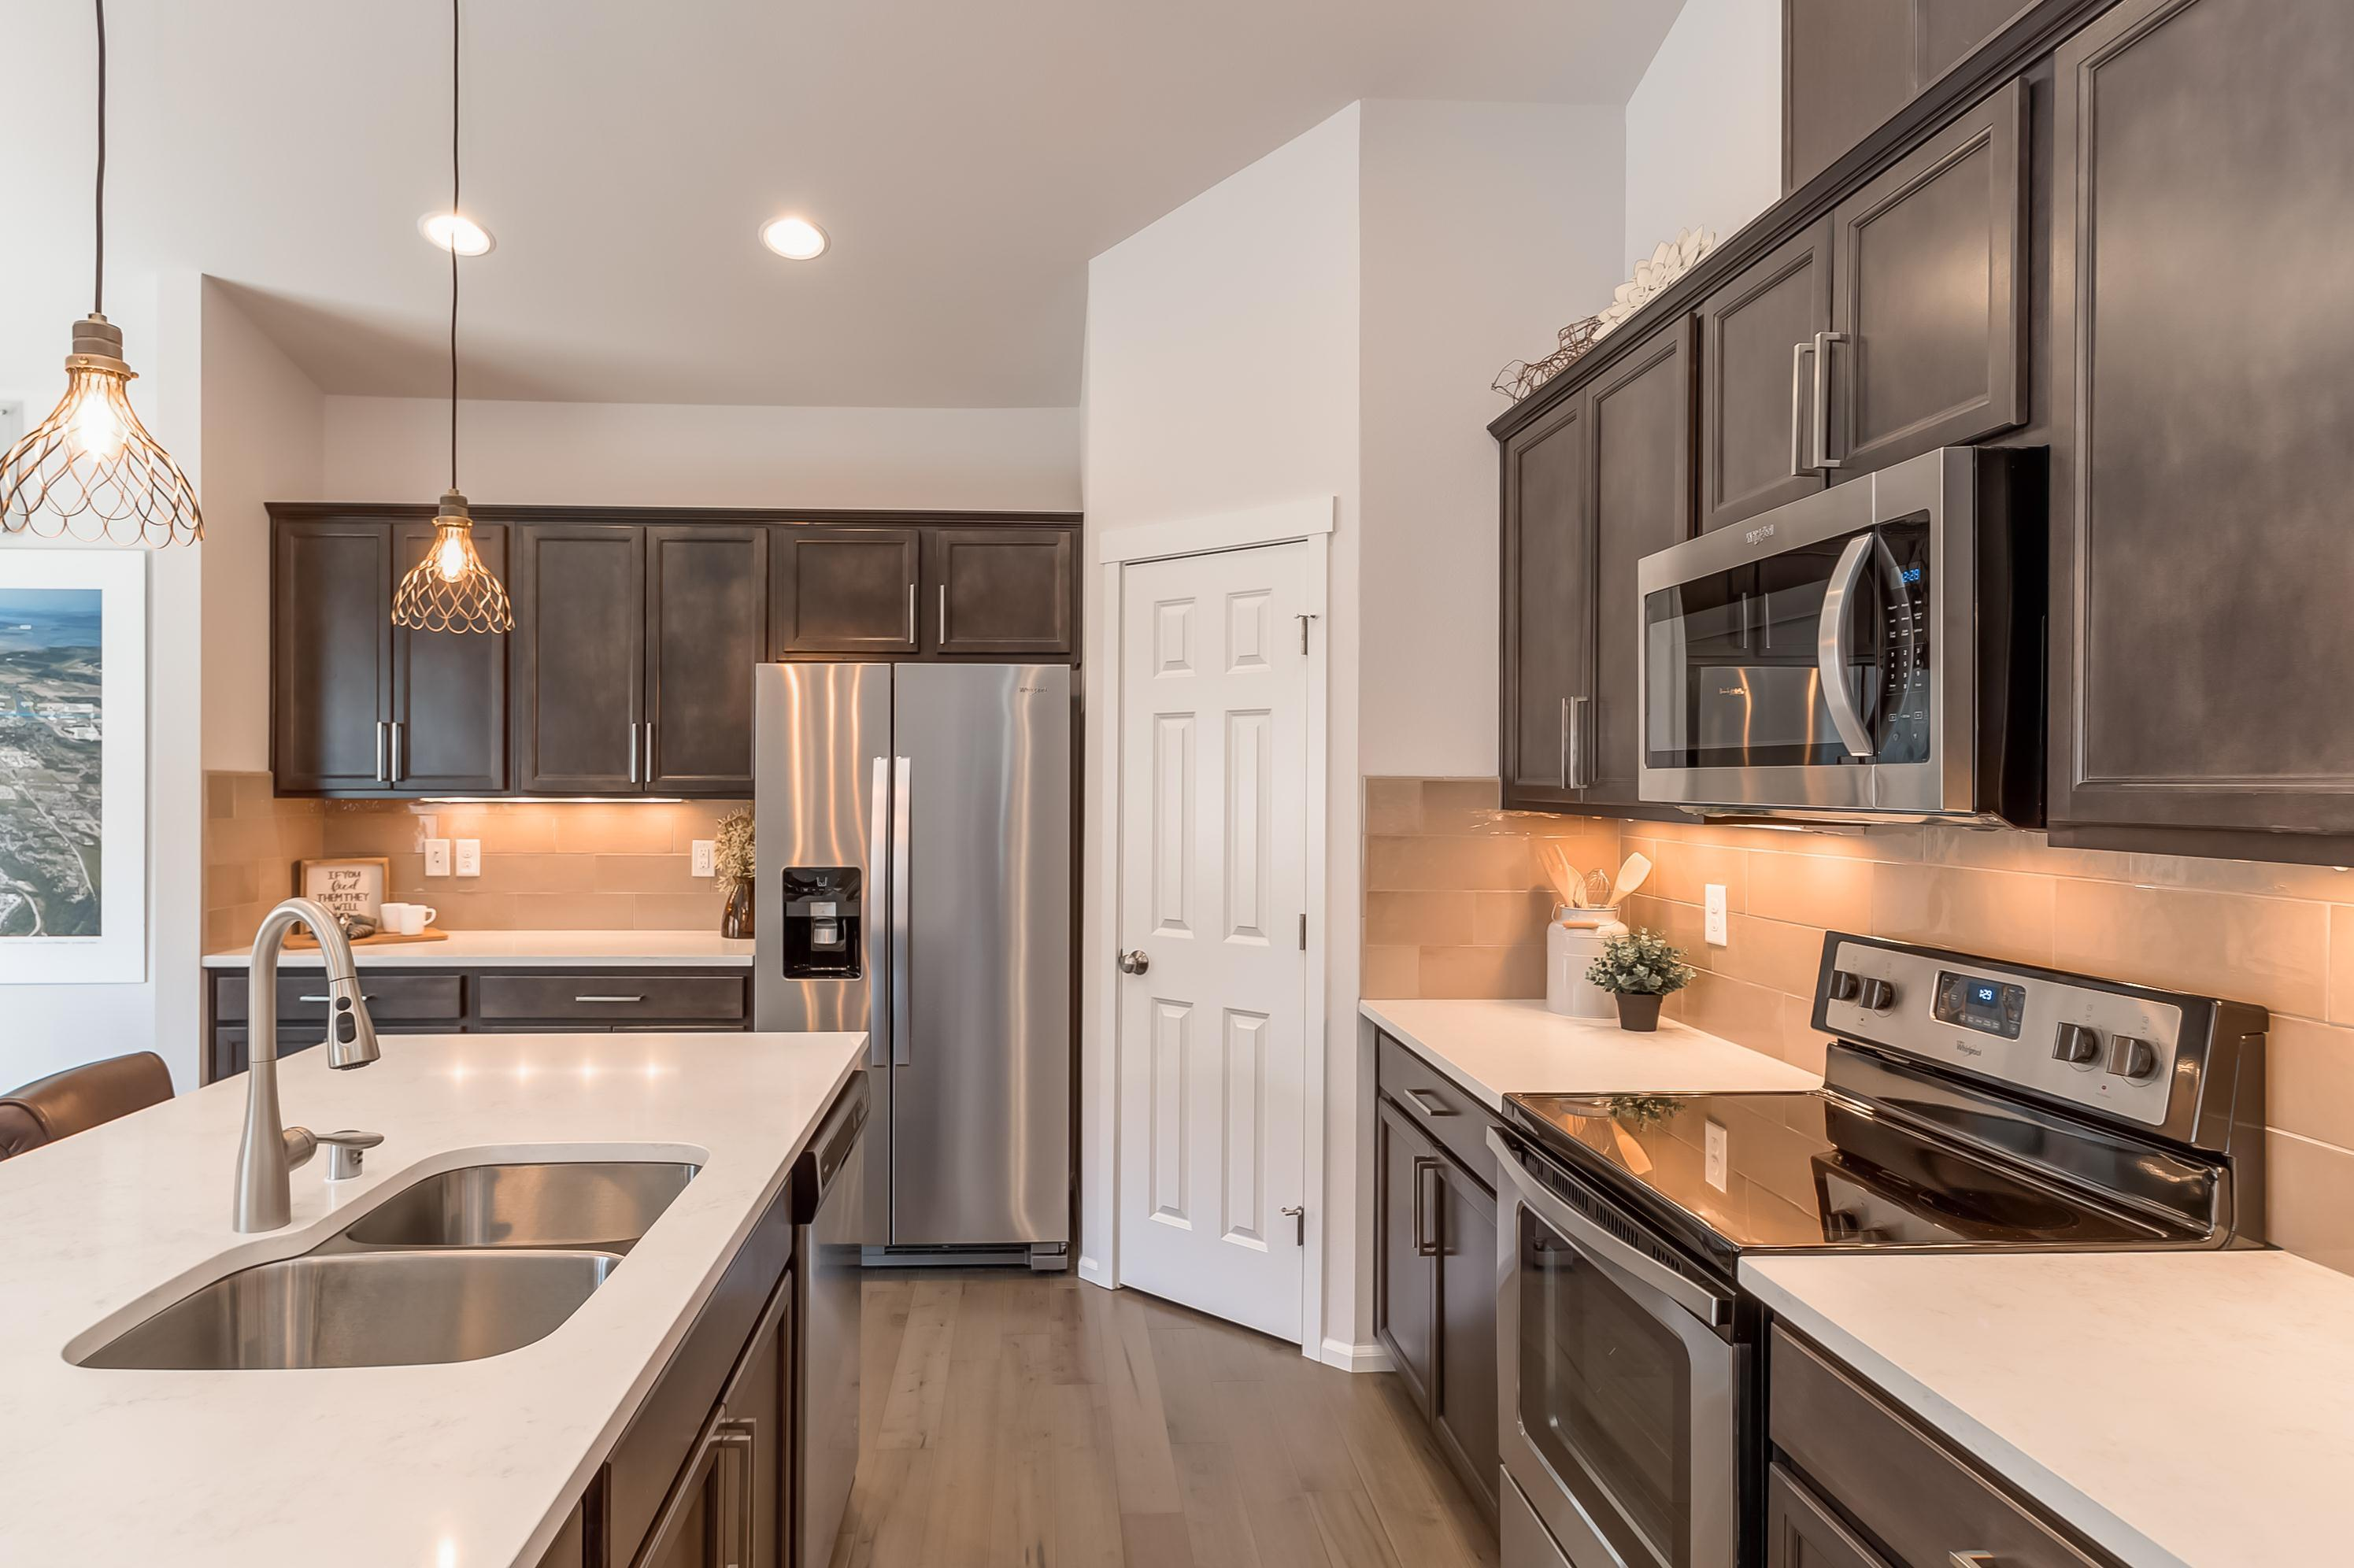 Kitchen featured in the CC Sinclair By Landed Gentry Homes in Bellingham, WA